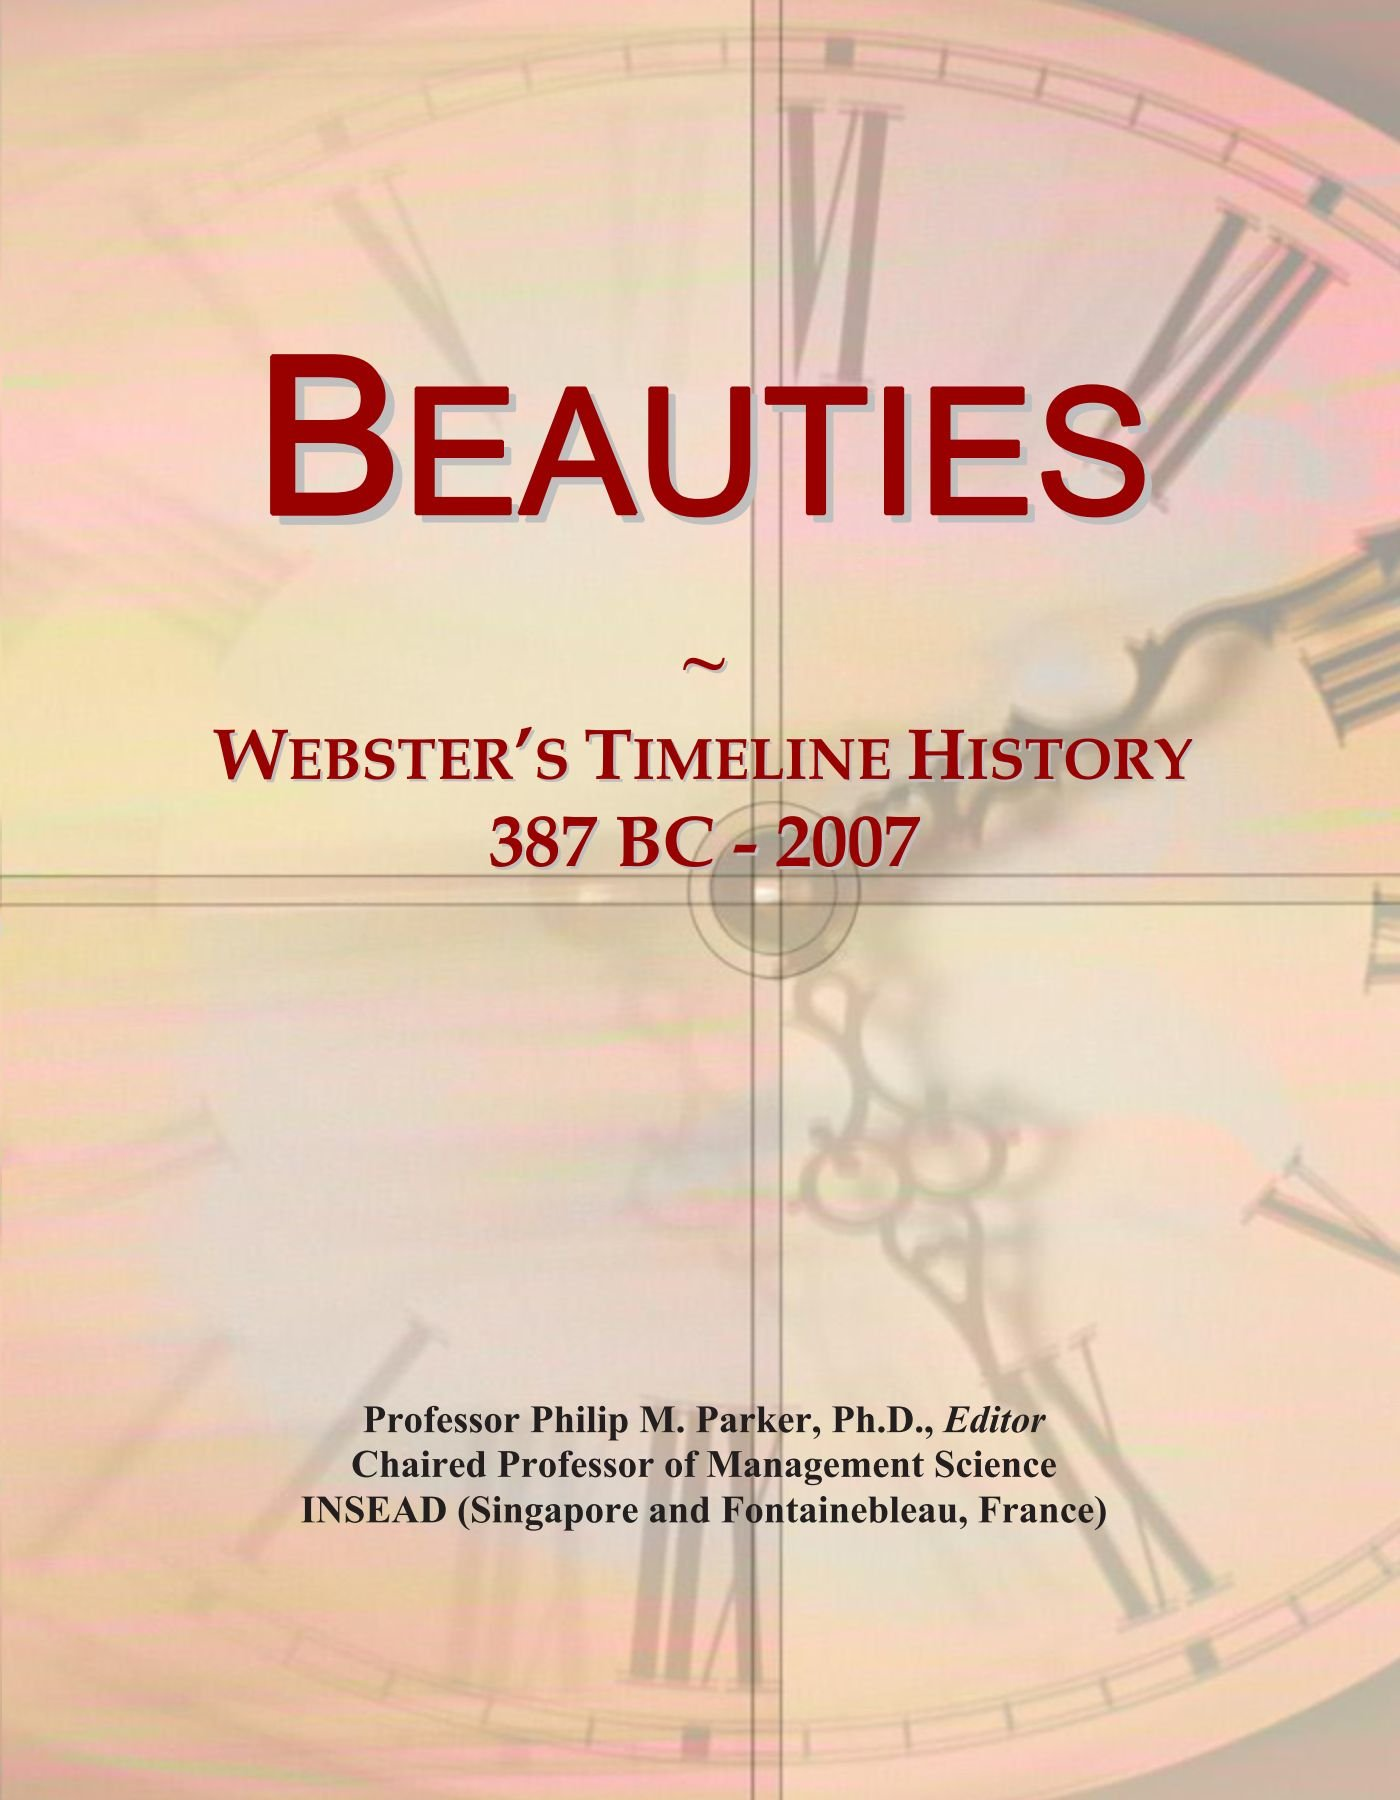 Beauties: Webster's Timeline History, 387 BC - 2007 ebook